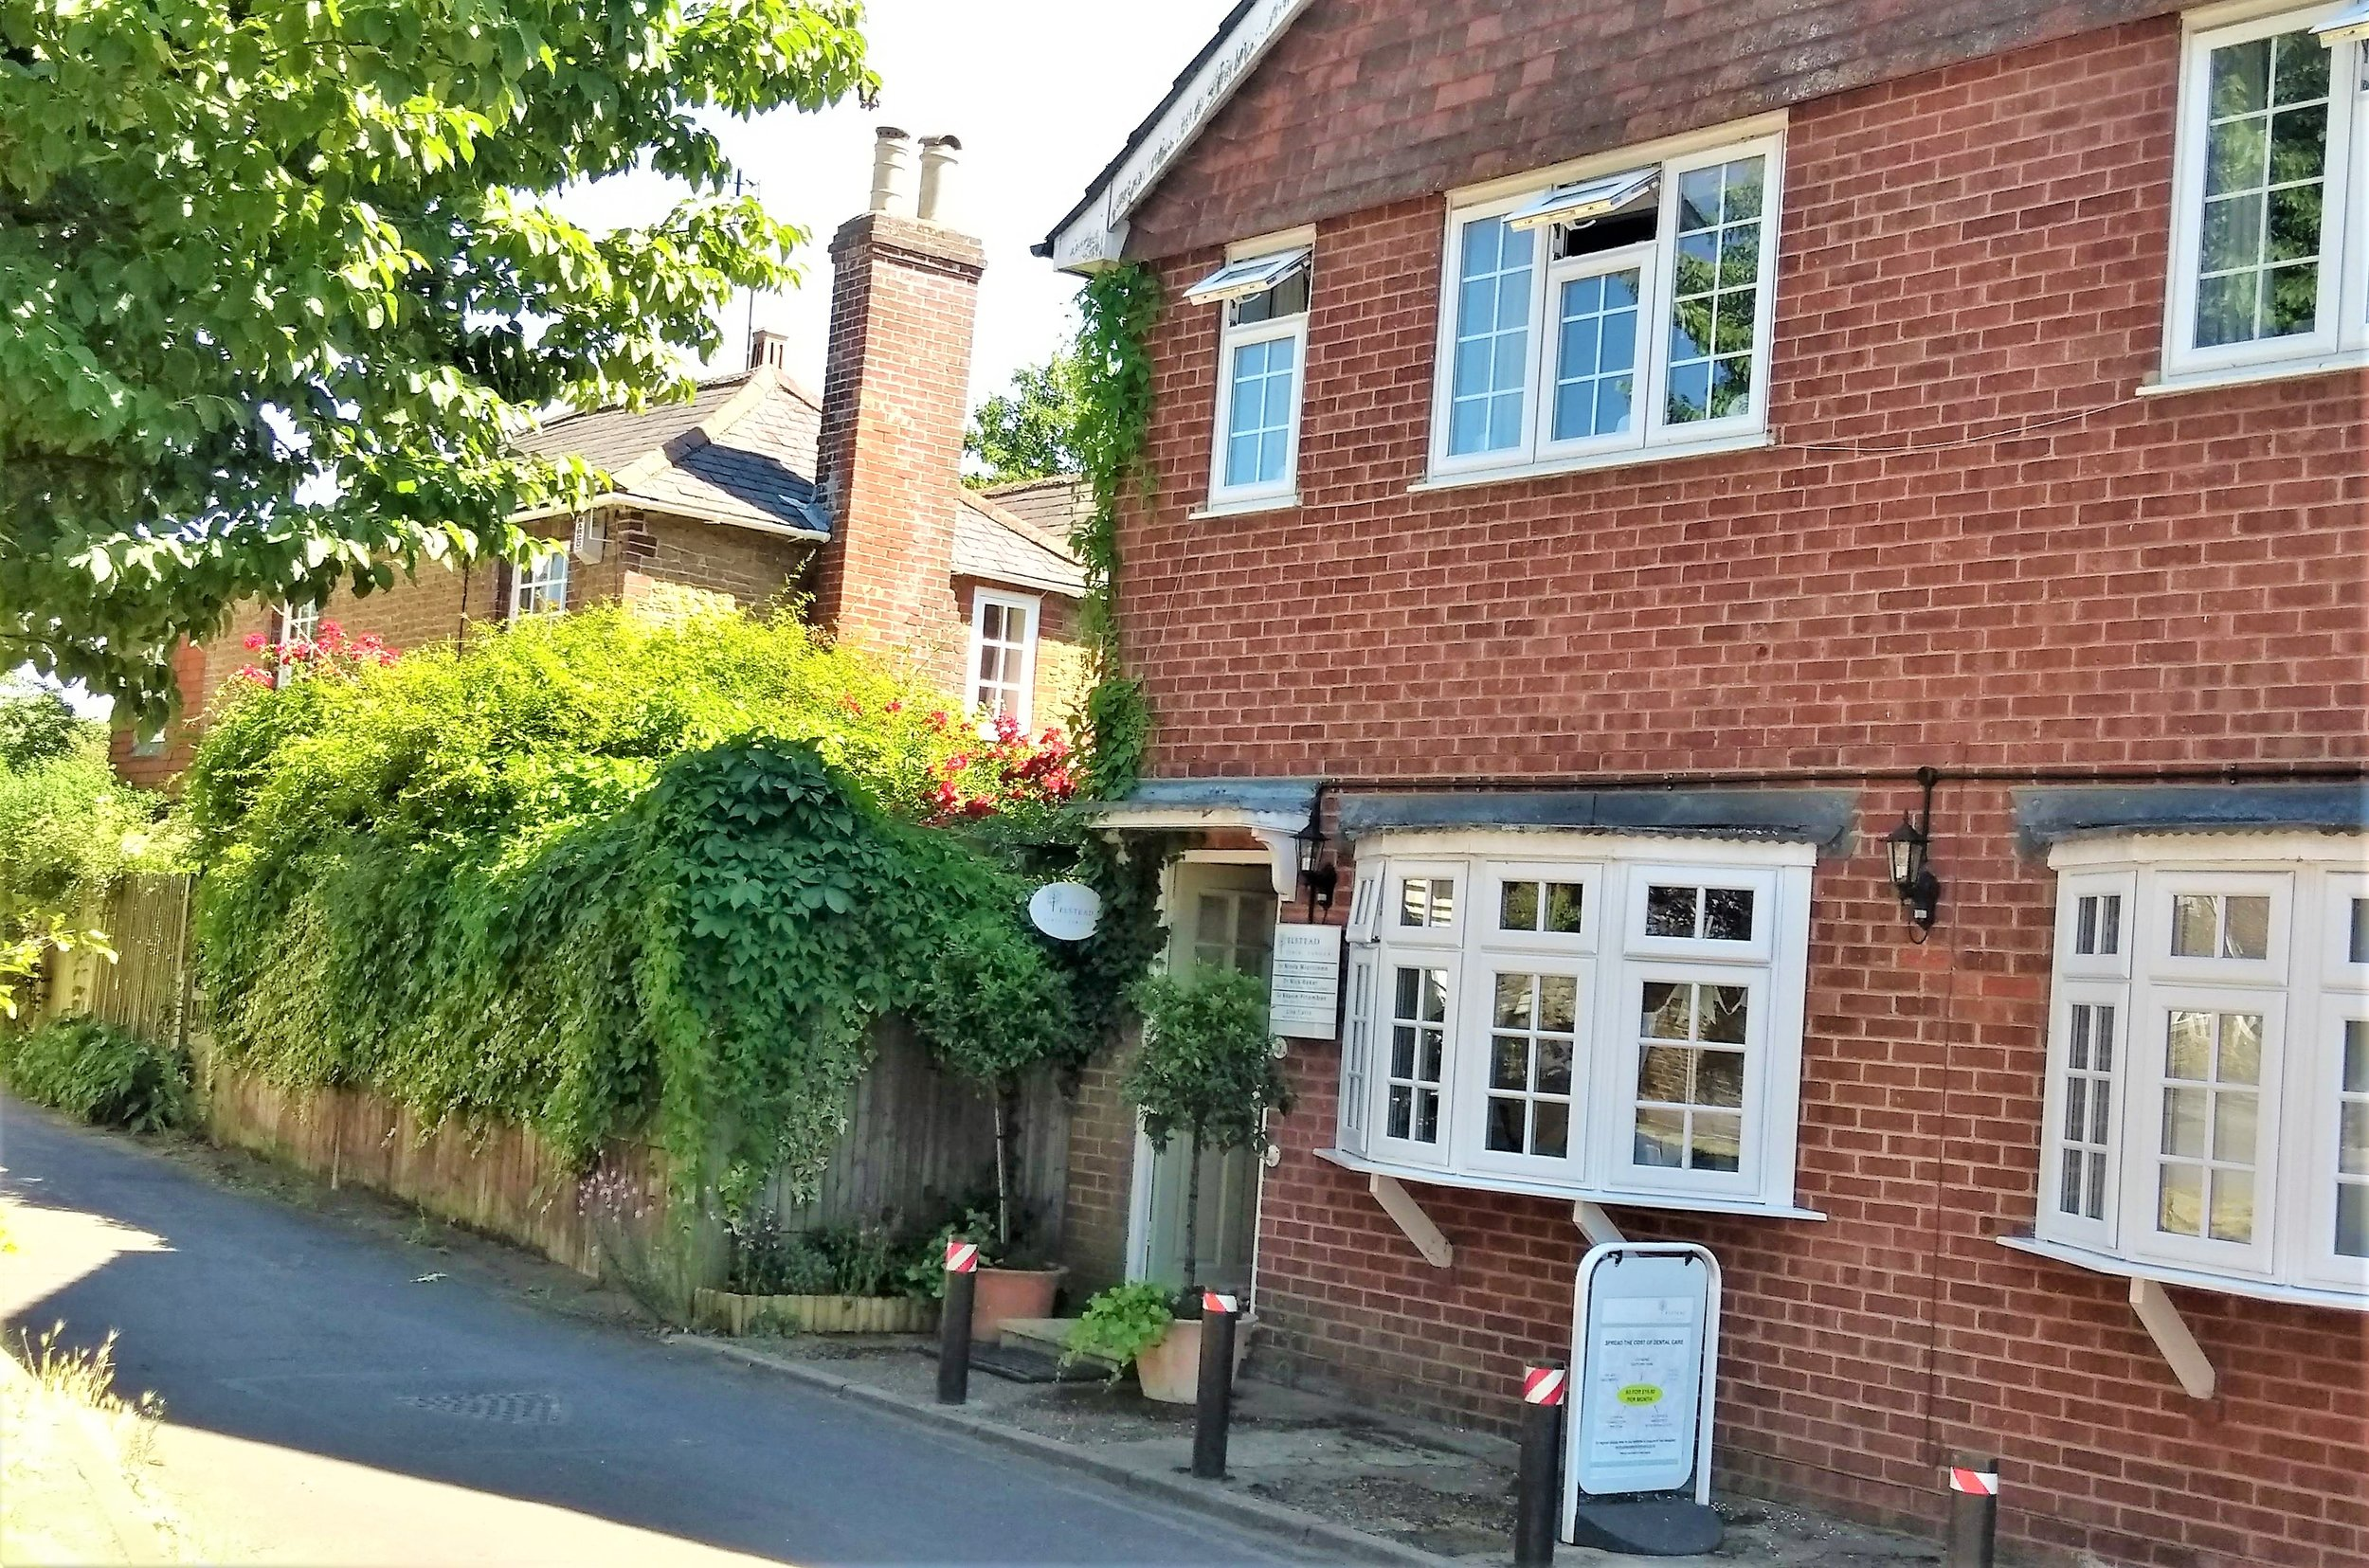 We are located in the heart of Elstead village, by the village green.Parking is available around the green. -